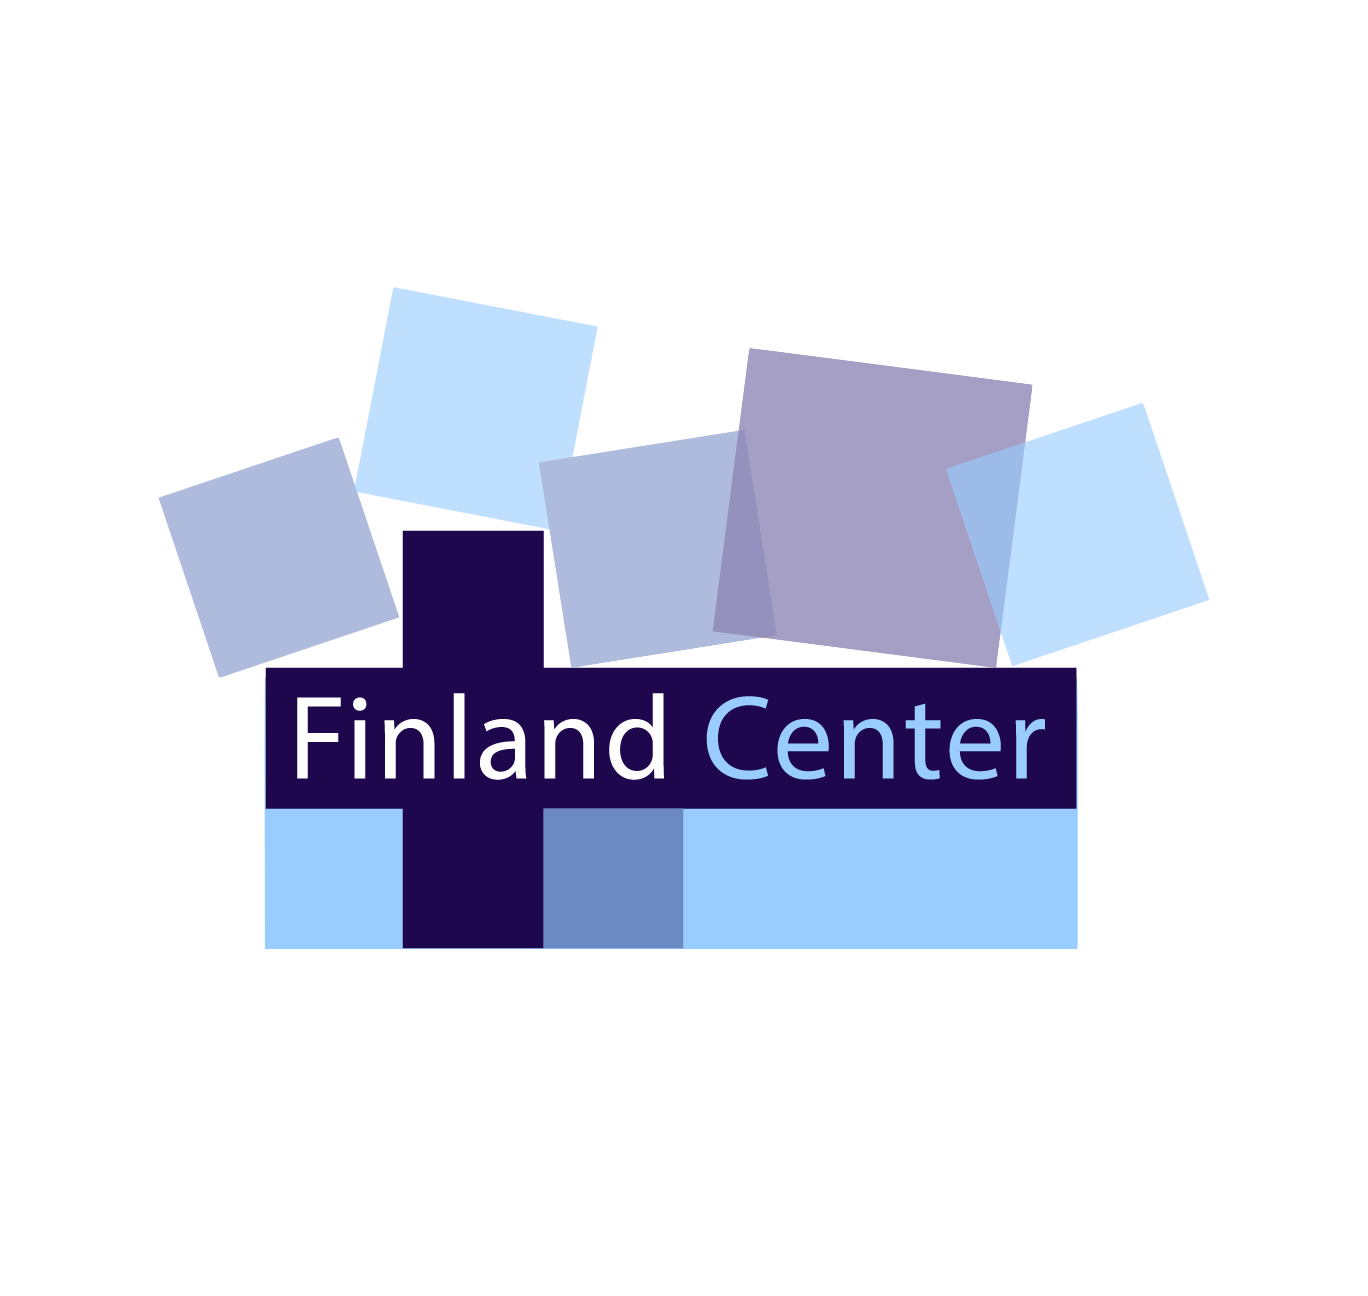 Finland Center Foundation